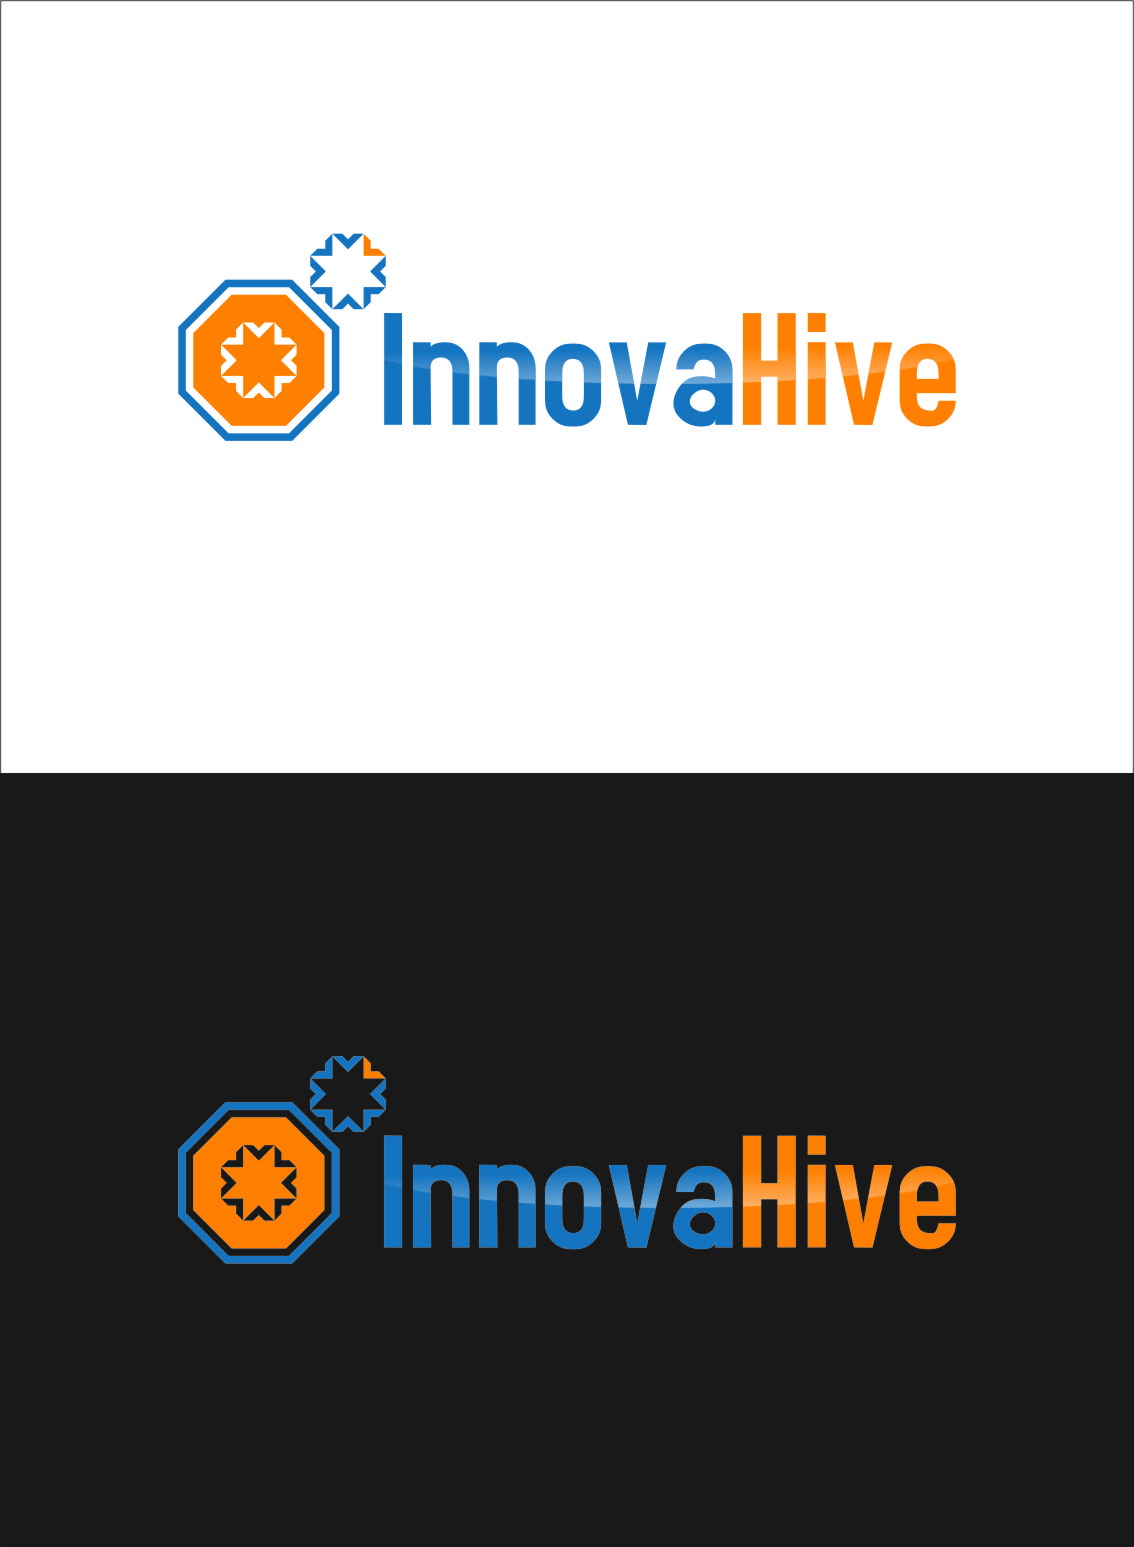 Logo Design by RasYa Muhammad Athaya - Entry No. 133 in the Logo Design Contest InnovaHive Logo Design.